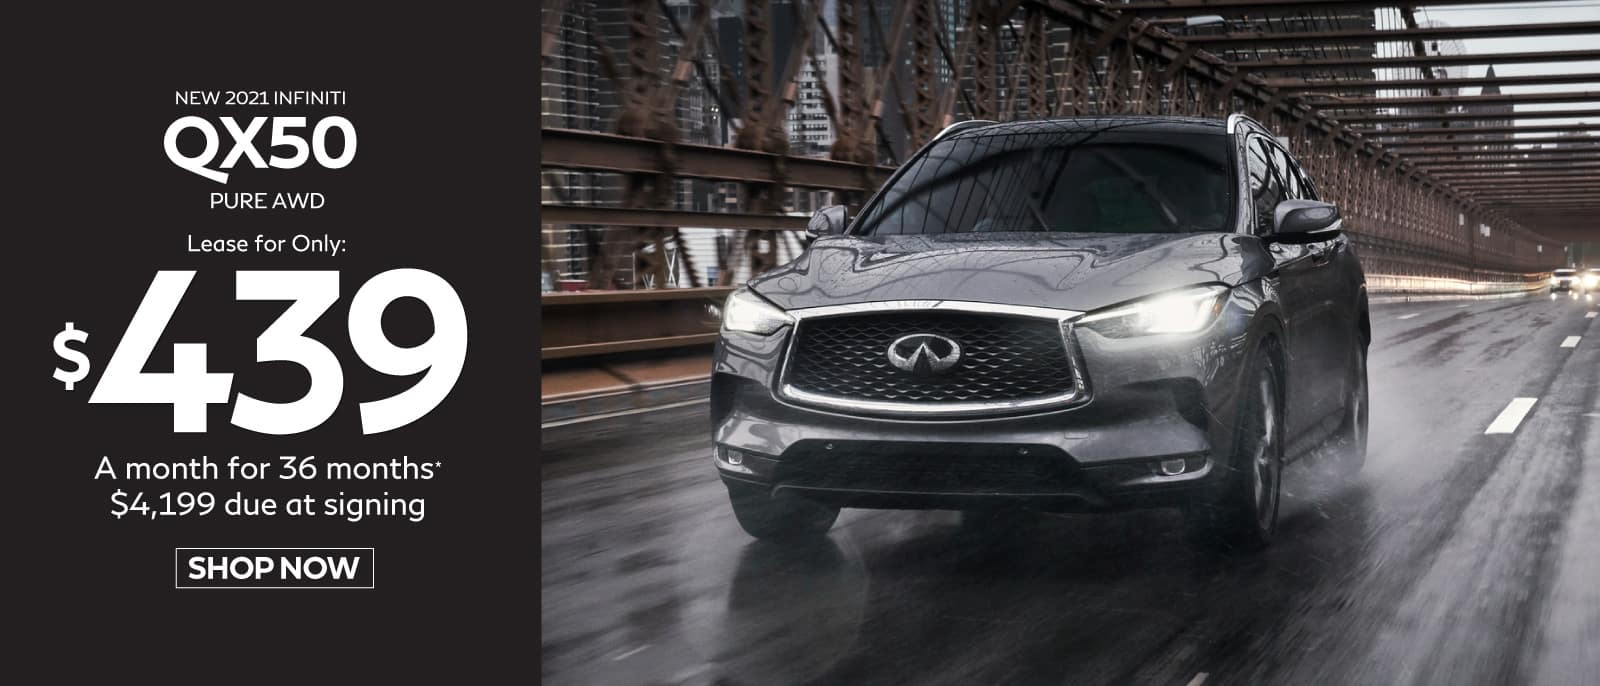 New 2021 INFINITI QX50 - Lease for only $439 a mo. for 36 mos.